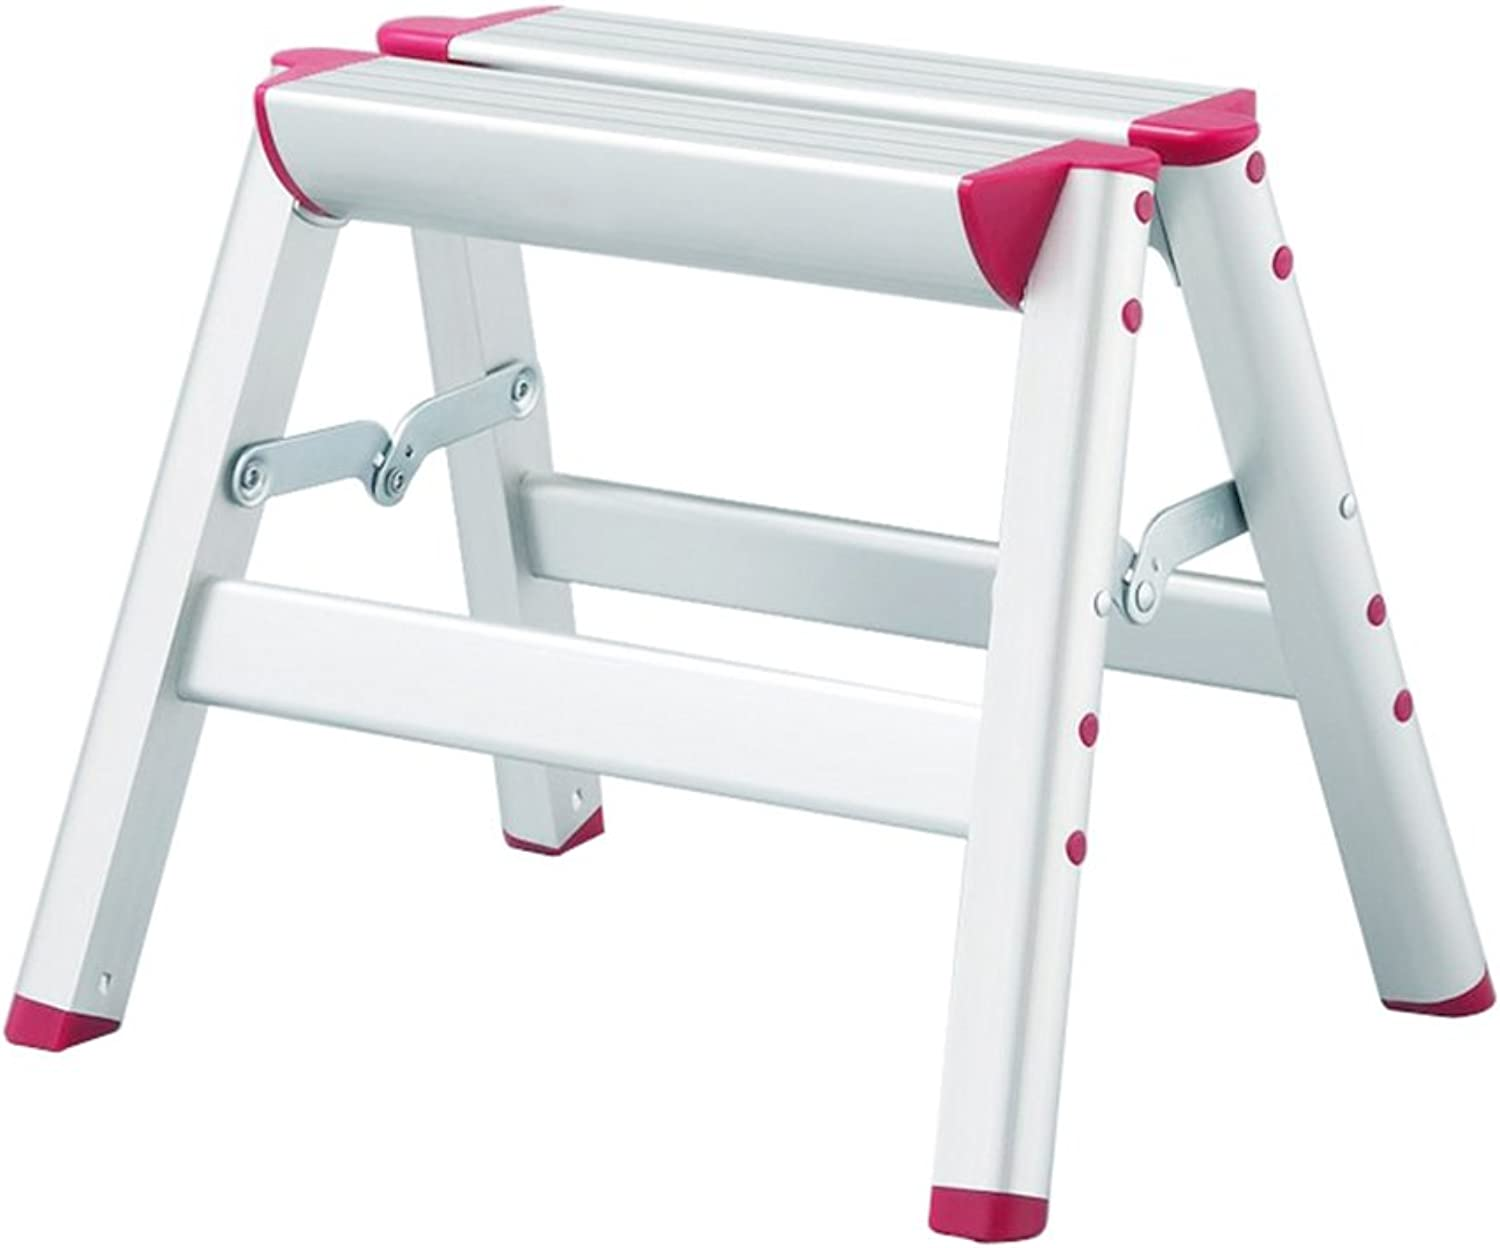 WUFENG Ladder Stool Foldable Thicken Aluminum Alloy Ladders Portable Sturdy and Lightweight Household (color   Silver, Size   38x31x30cm)